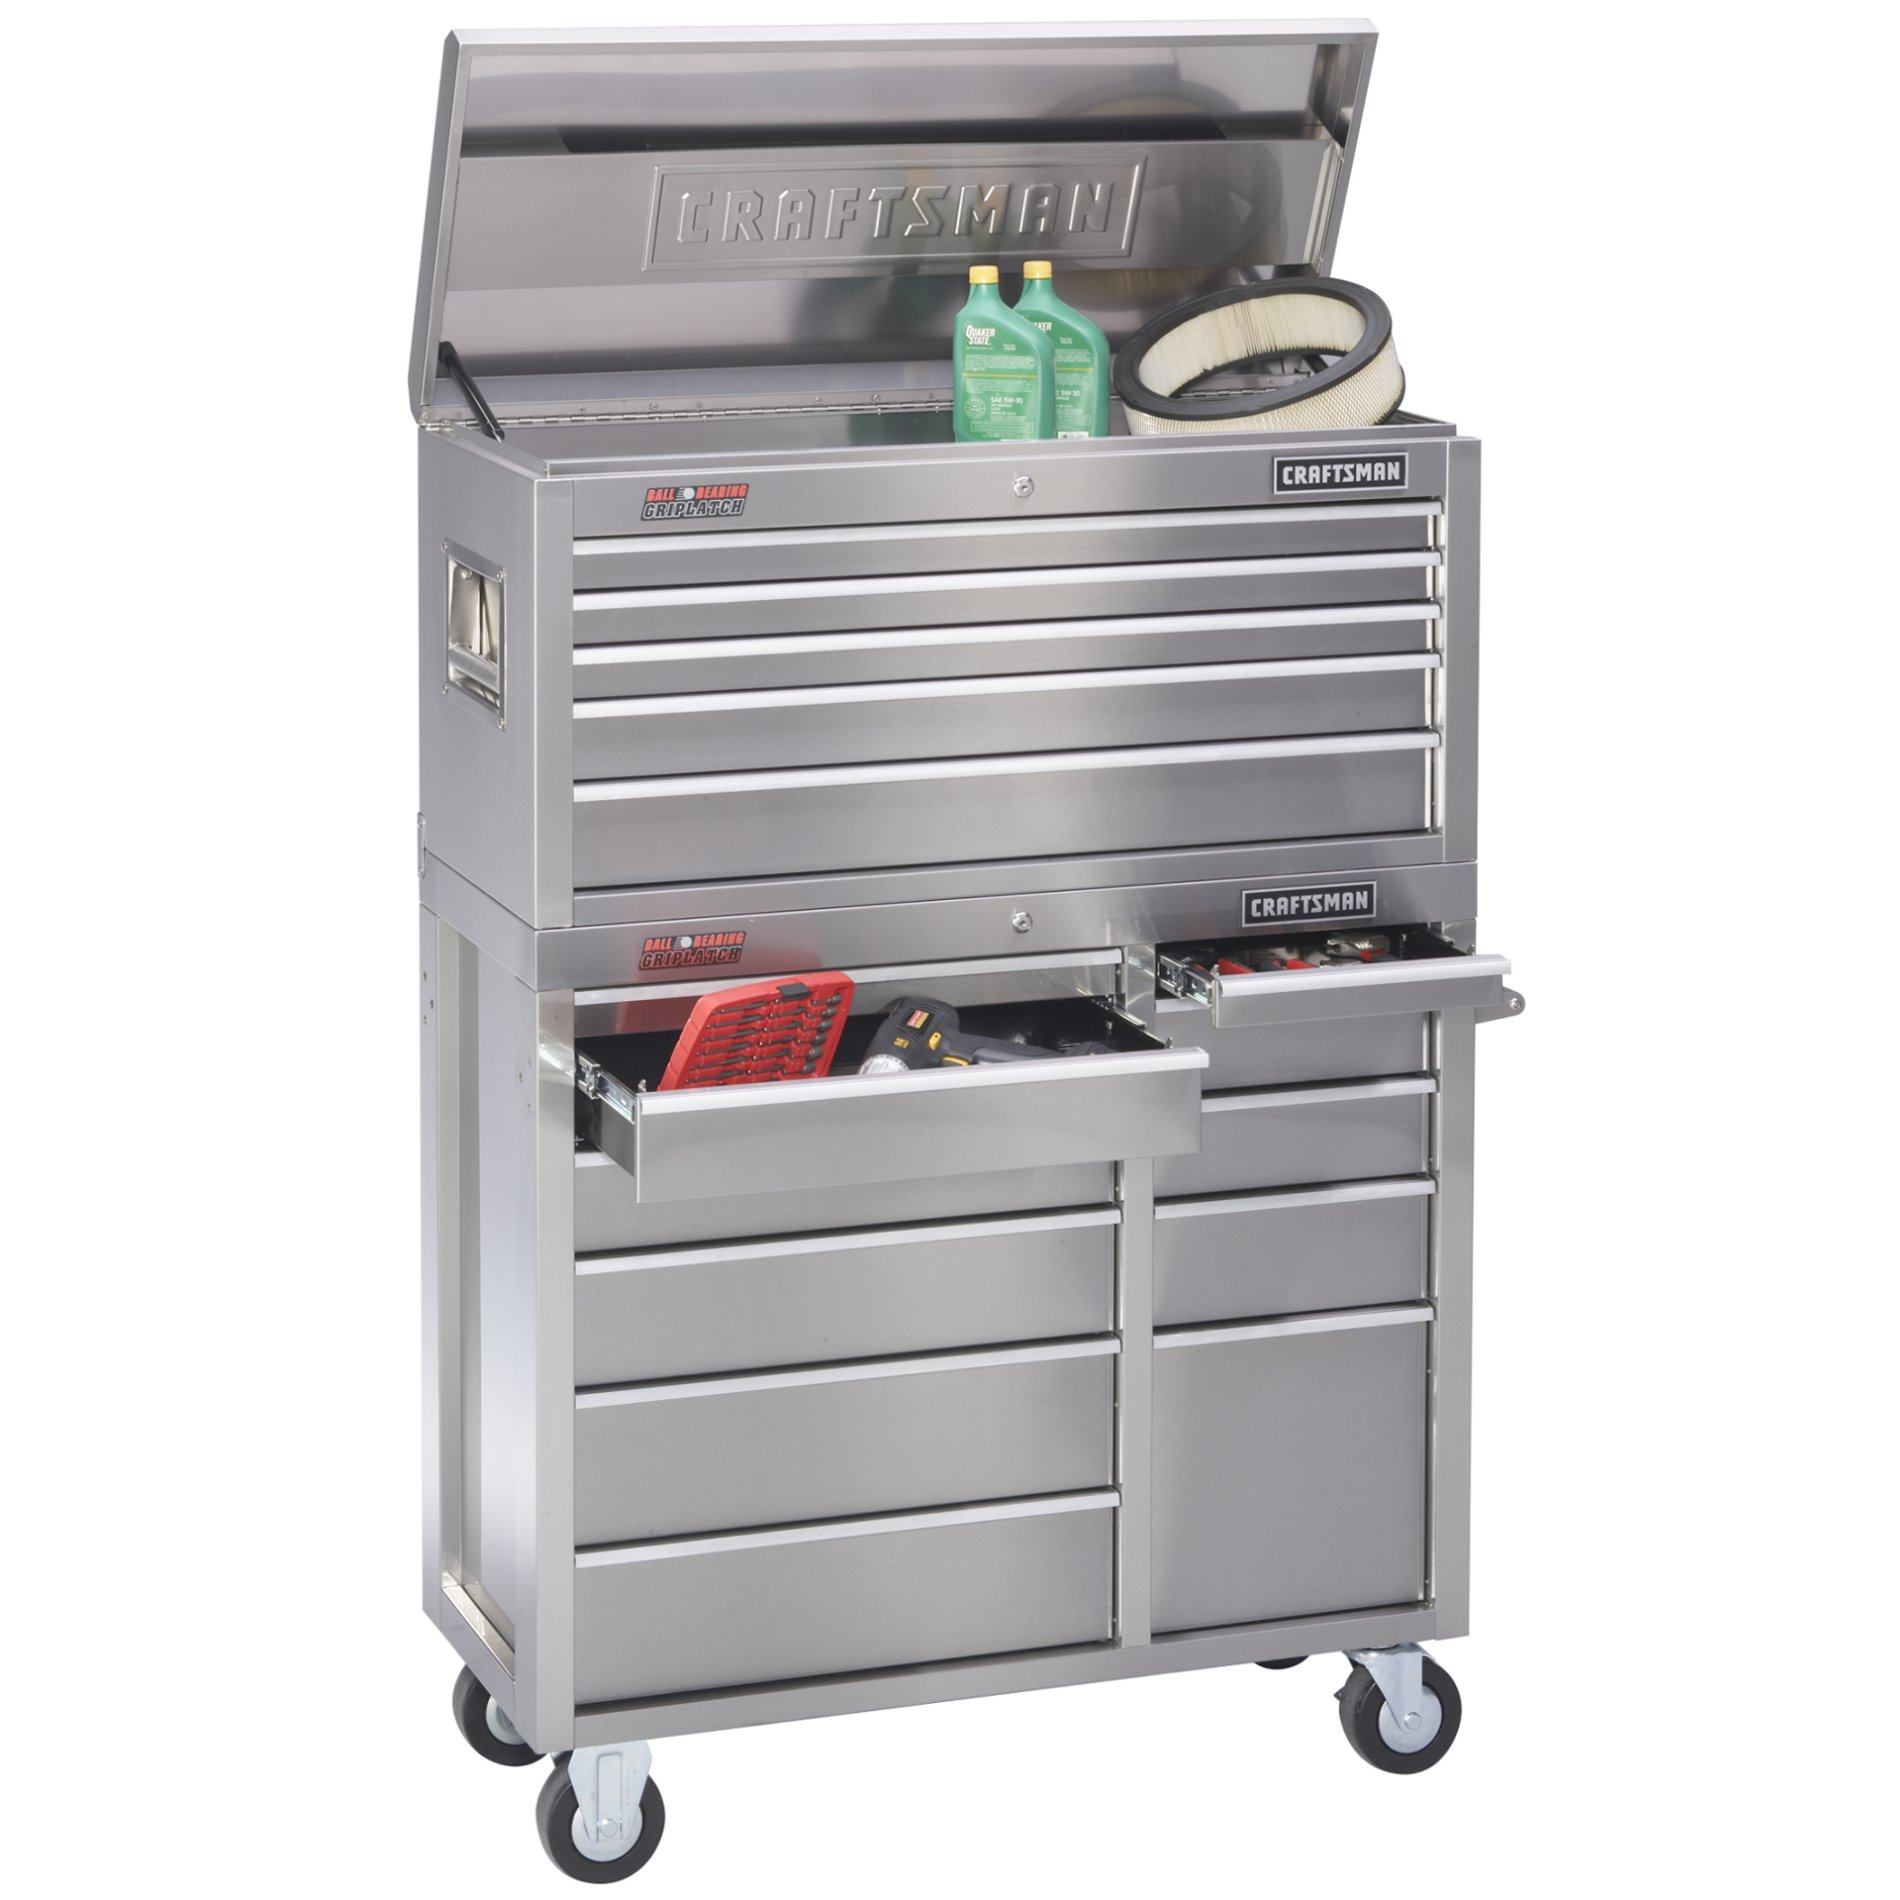 "Craftsman 41"" Wide 5-Drawer Ball-Bearing GRIPLATCH® Top Chest - Stainless Steel"